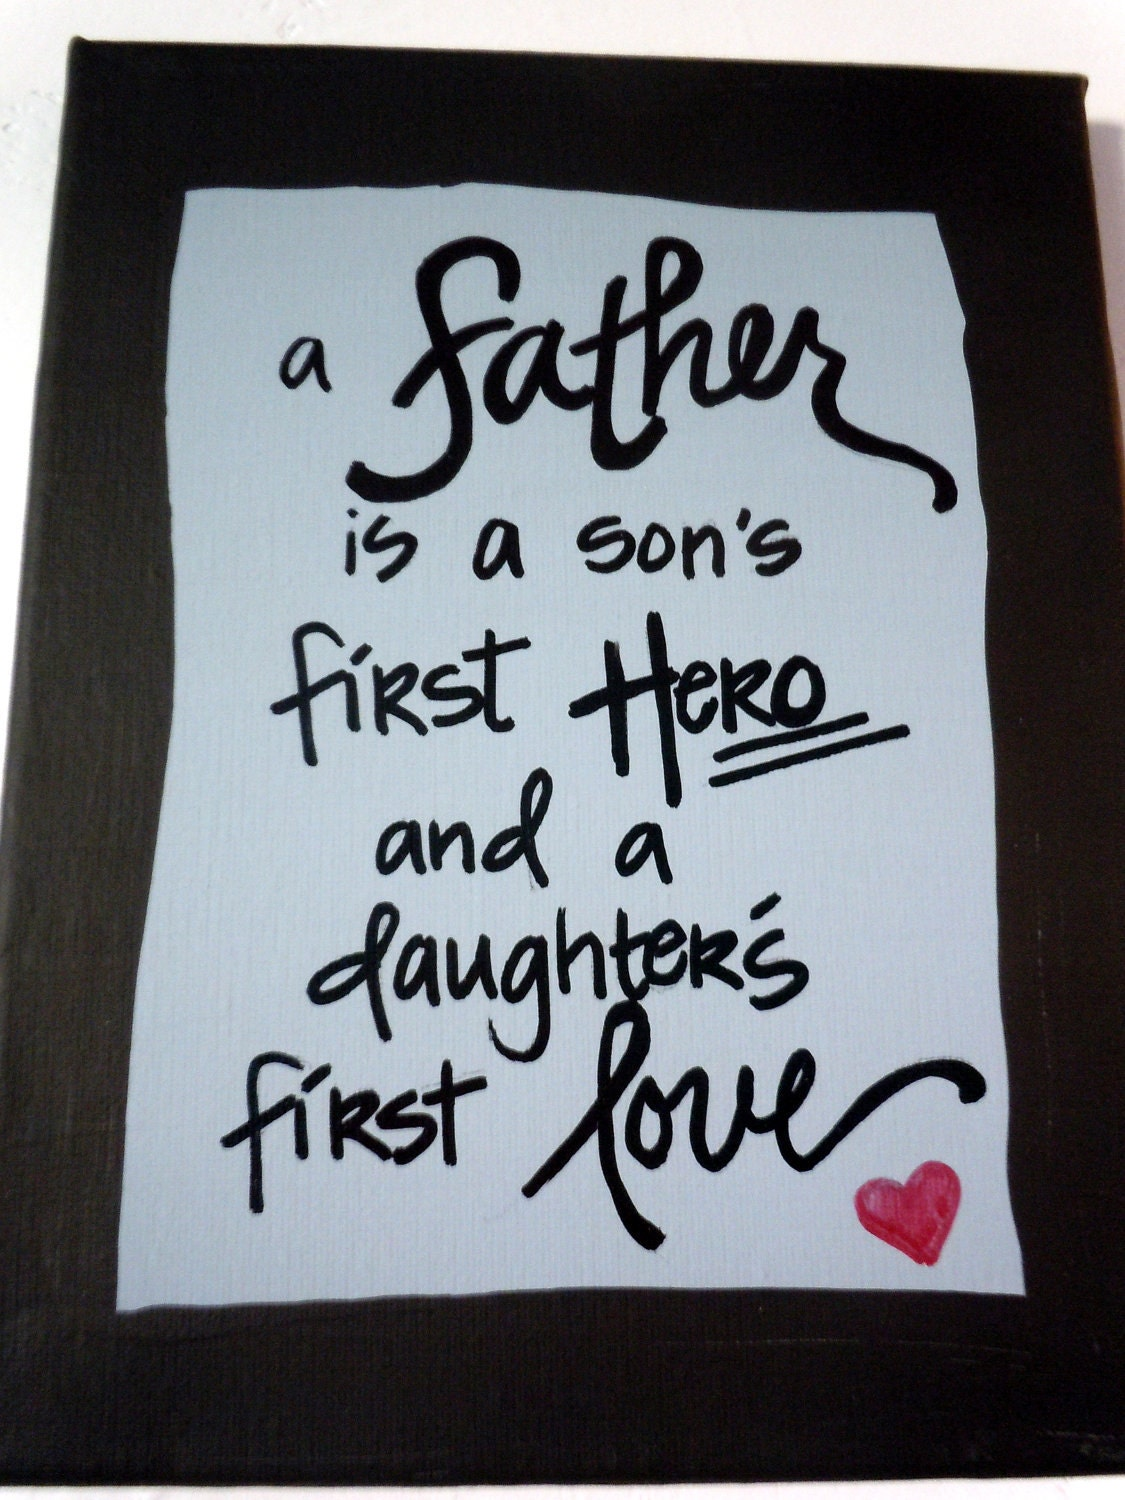 Hand-painted 8x10 canvas with quote about fathers being first